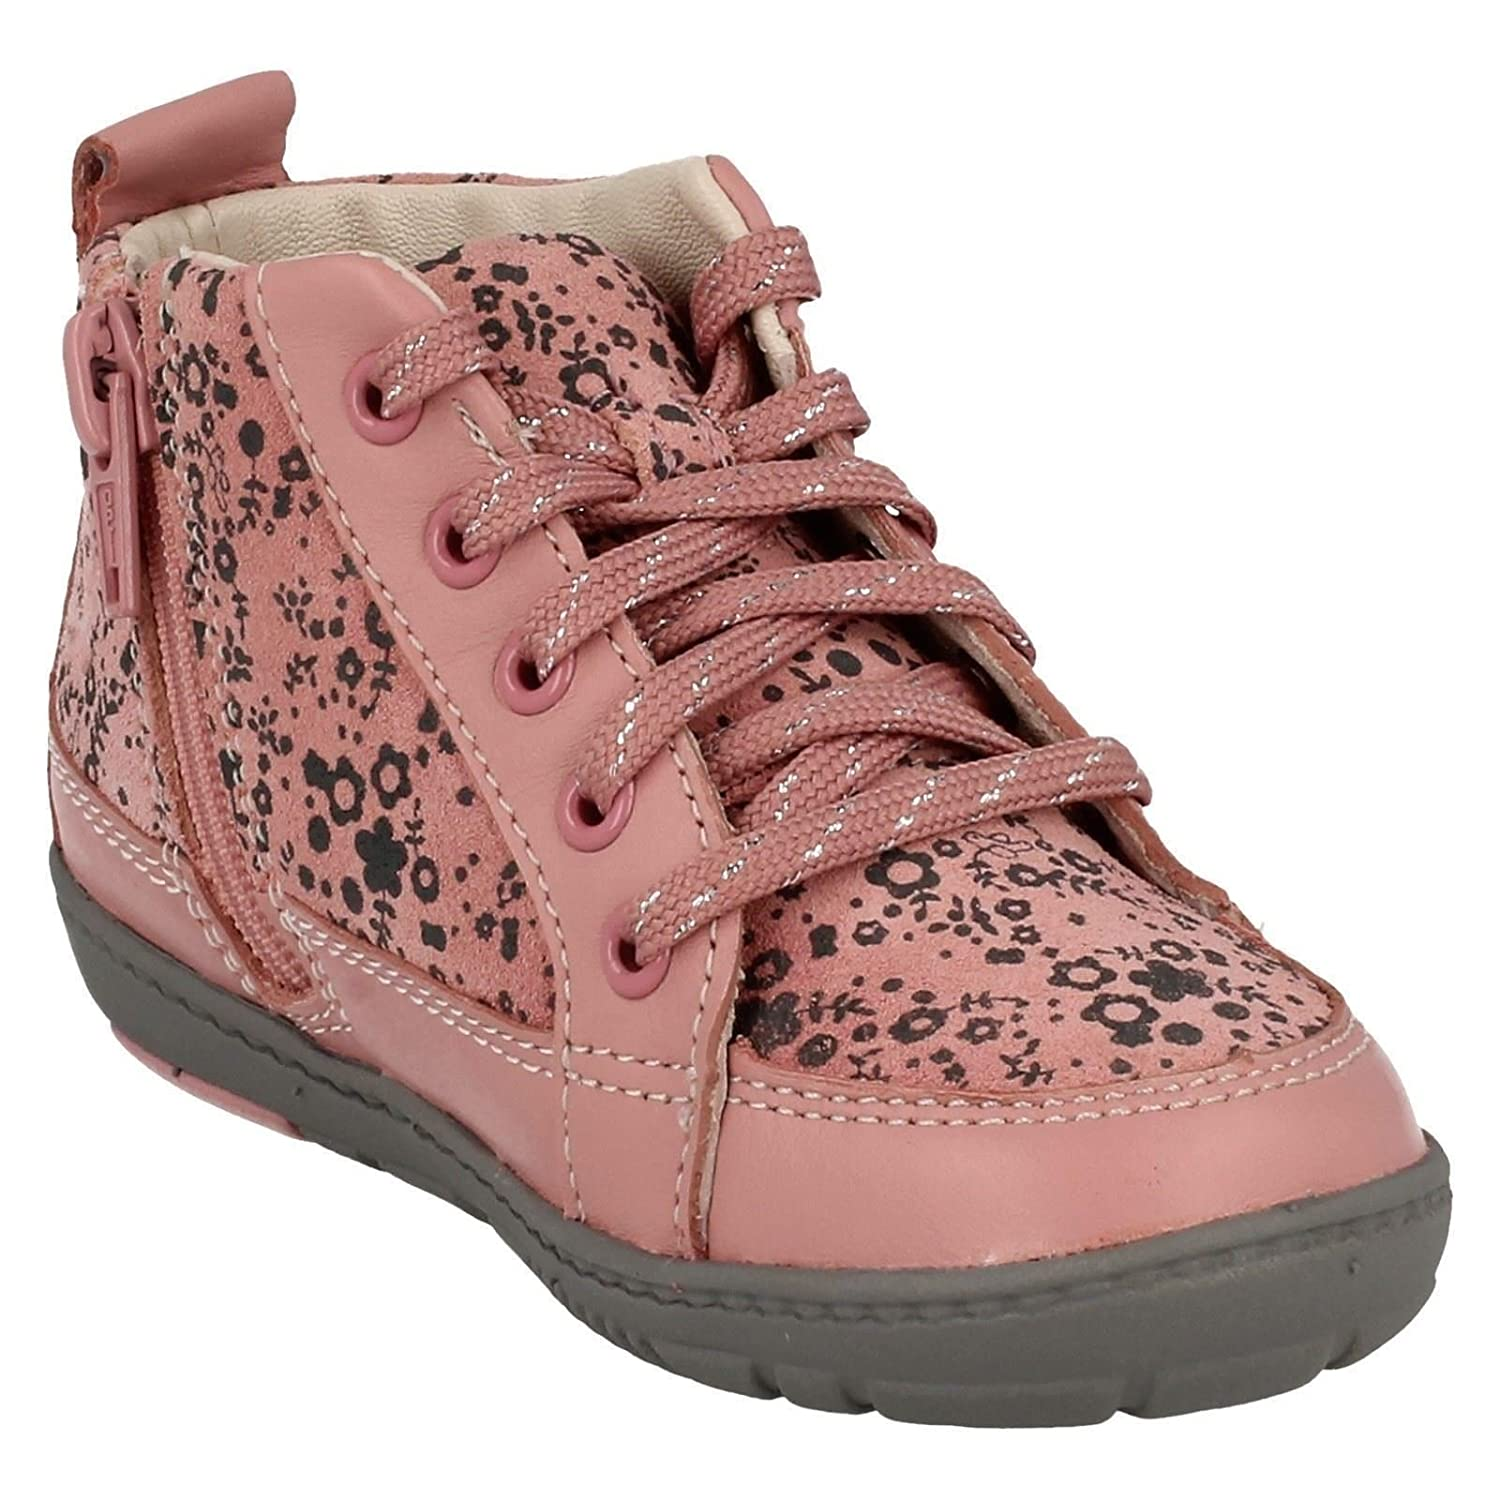 Clarks Maxi Libby Girls Pink Suede First Boots: Amazon.co.uk: Shoes & Bags